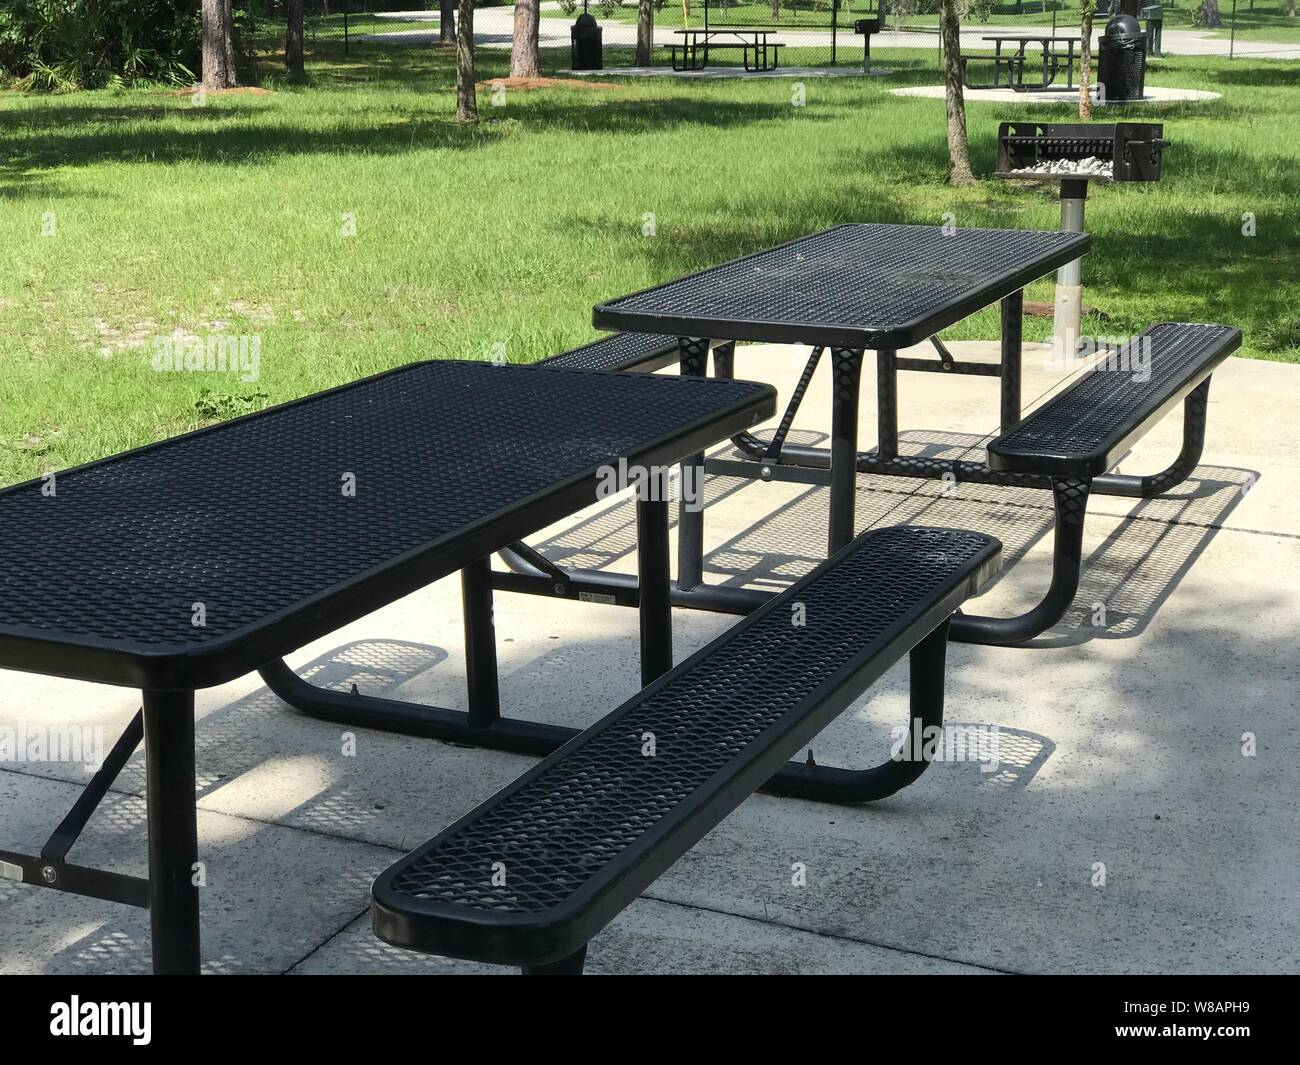 Stupendous Picnic Tables Benches And Grill In Park Photo Image Stock Caraccident5 Cool Chair Designs And Ideas Caraccident5Info